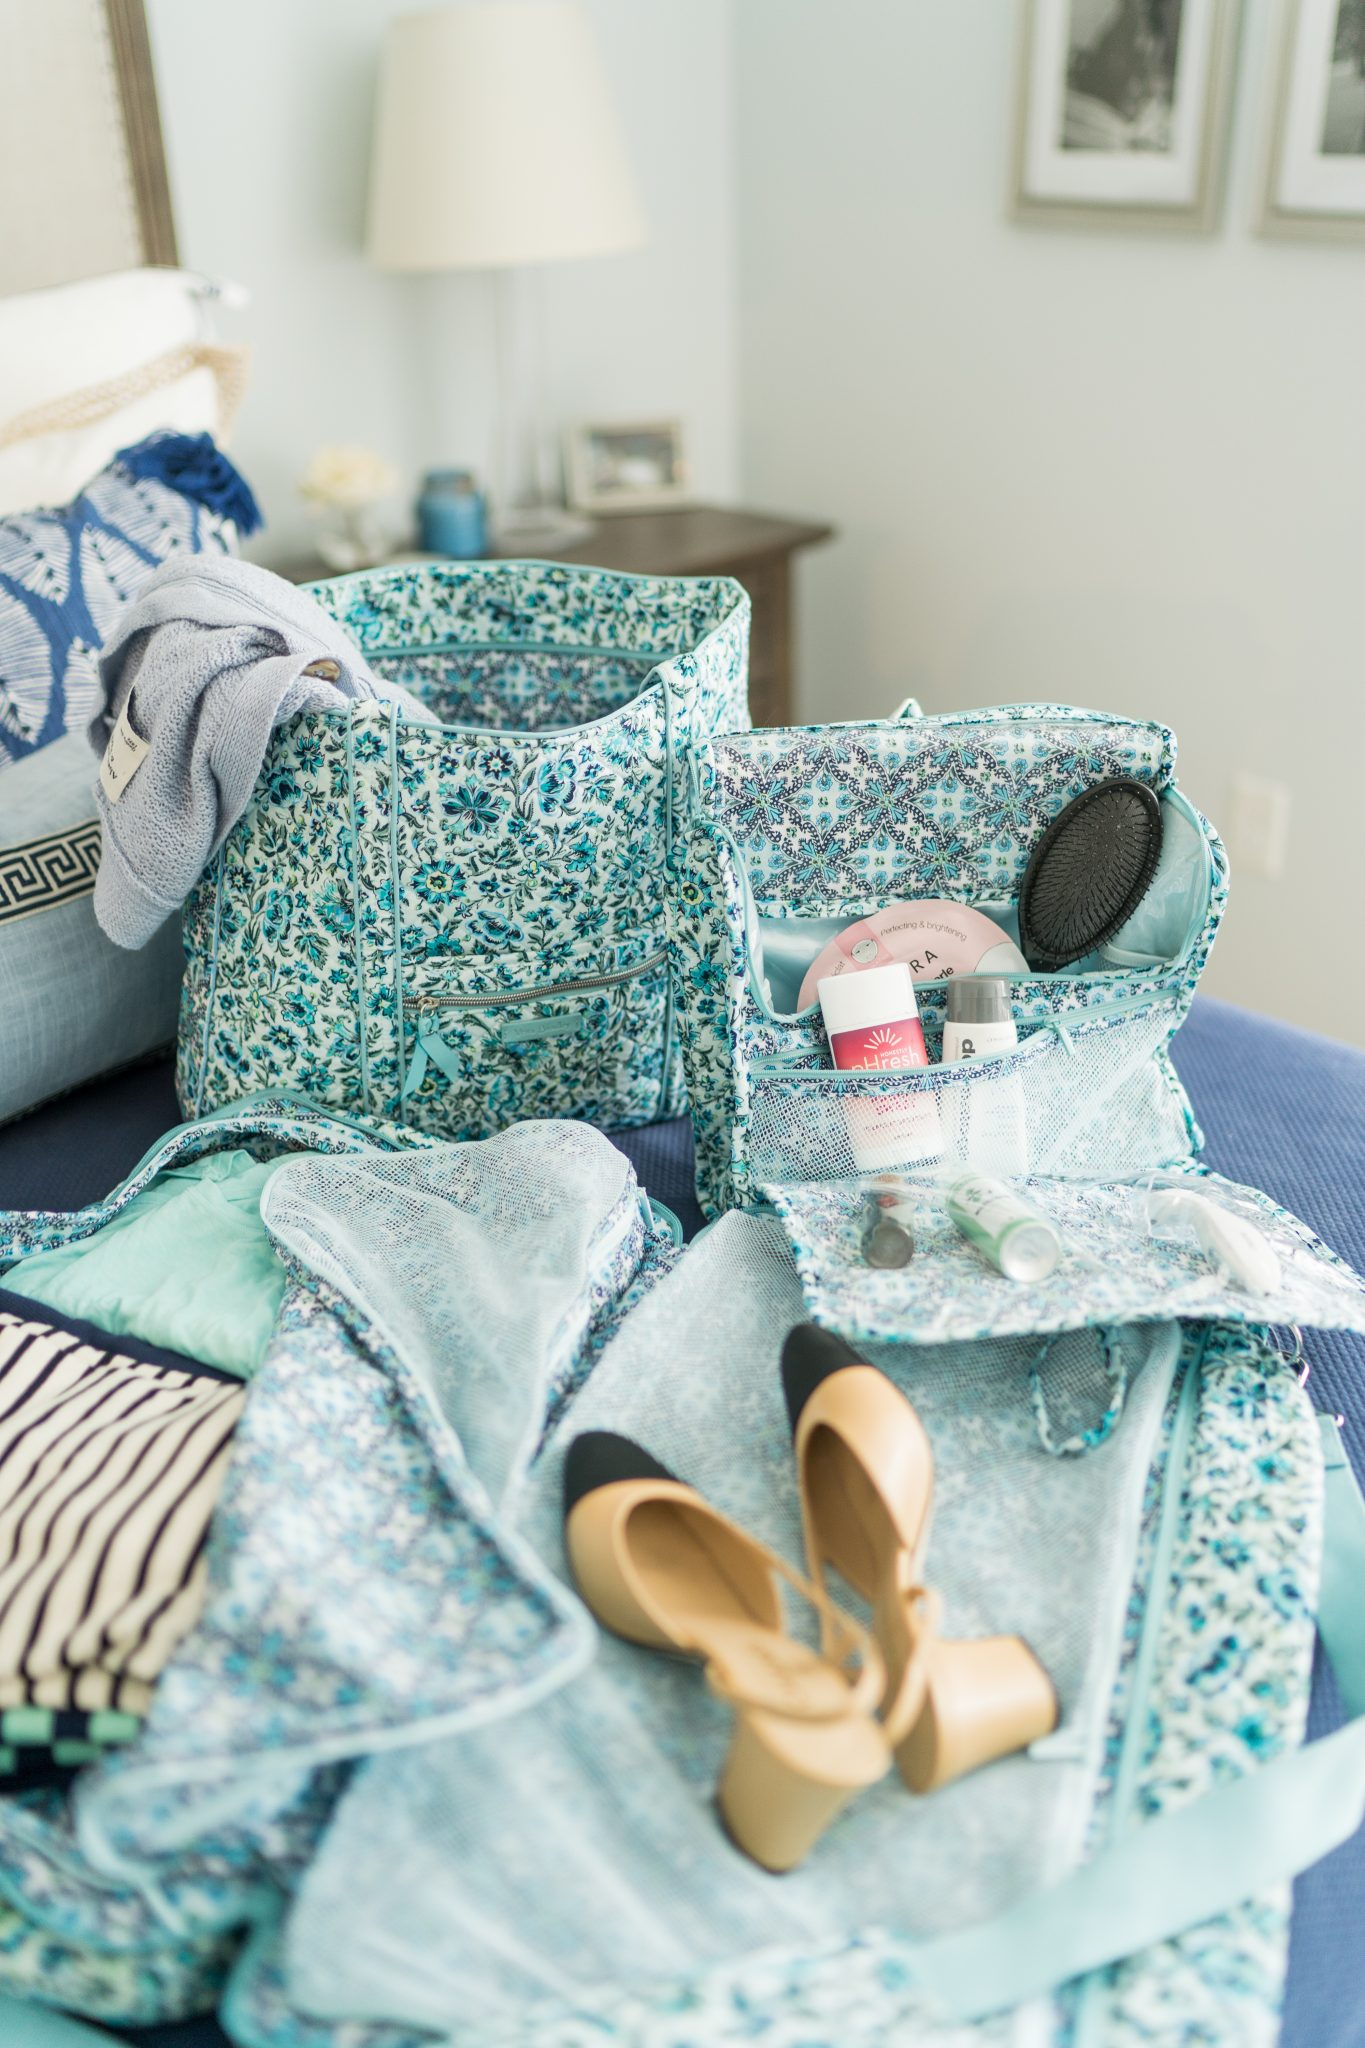 Packing tips for weekend getaways using Vera Bradley luggage